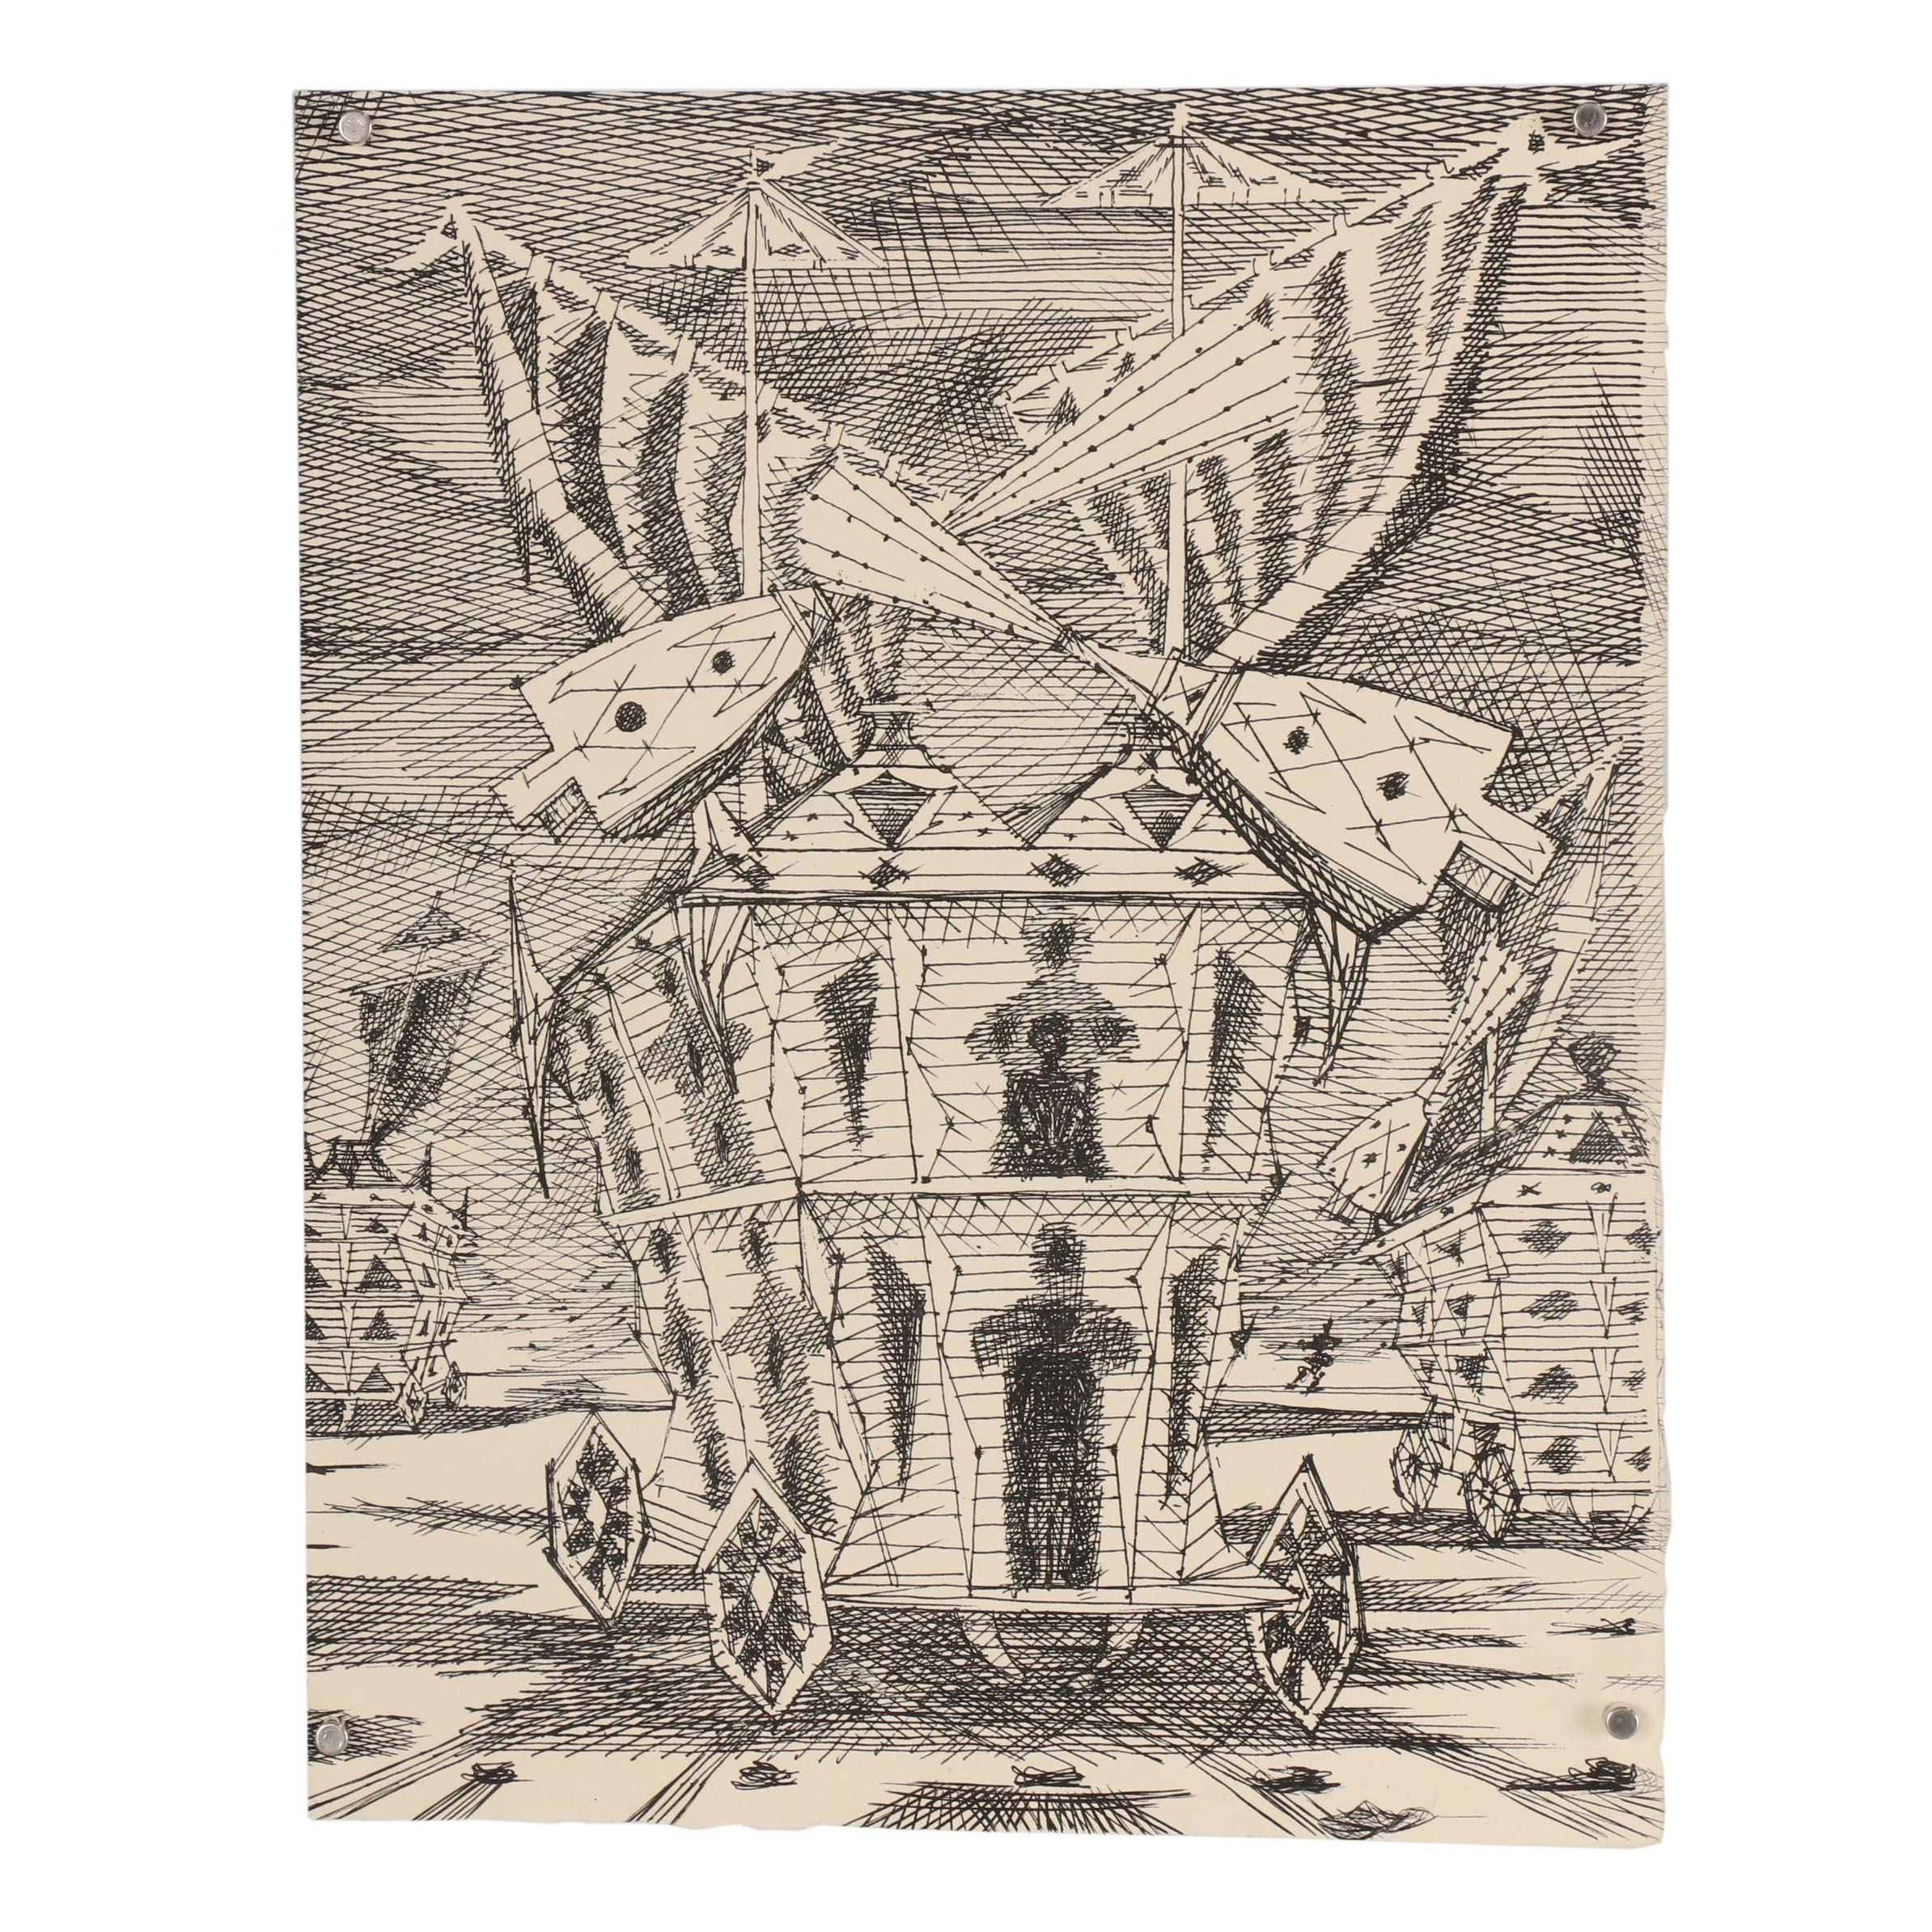 Lucien Coutaud Surrealist Etching